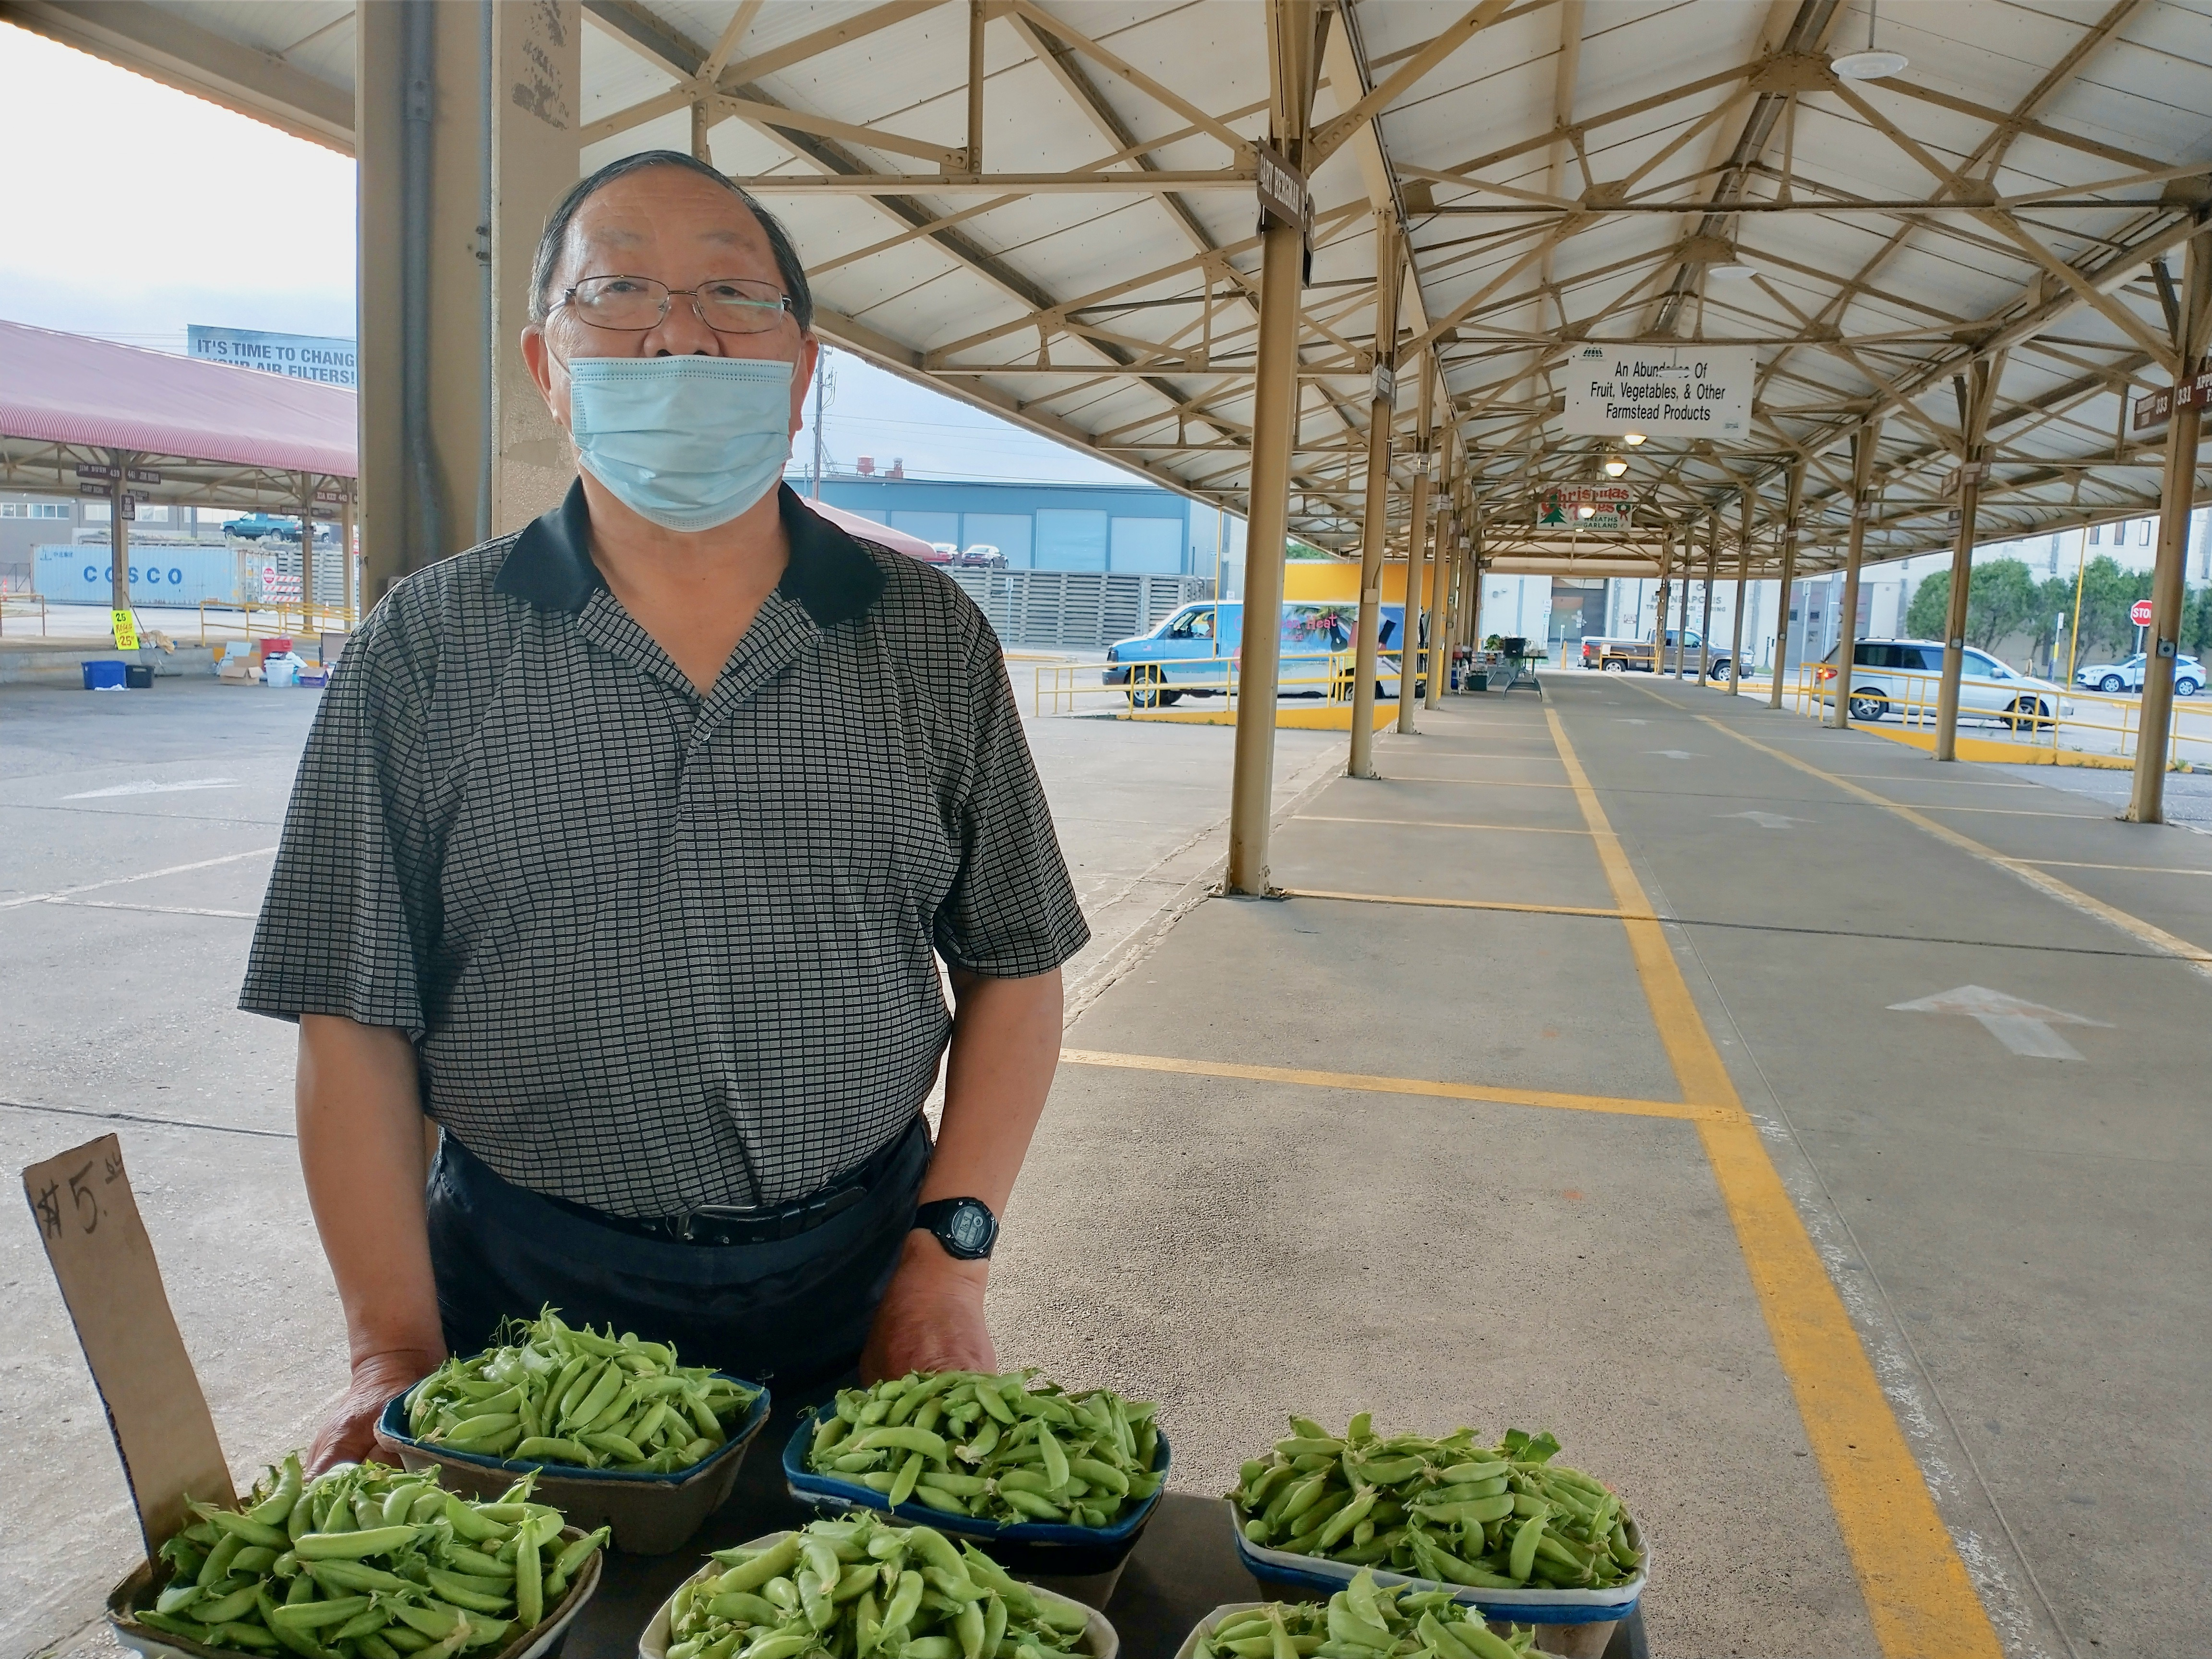 Caption: Hmong-American farmer You Pao Xiong stands near fresh produce at the Minneapolis Farmers Market., Credit: Mike Moen